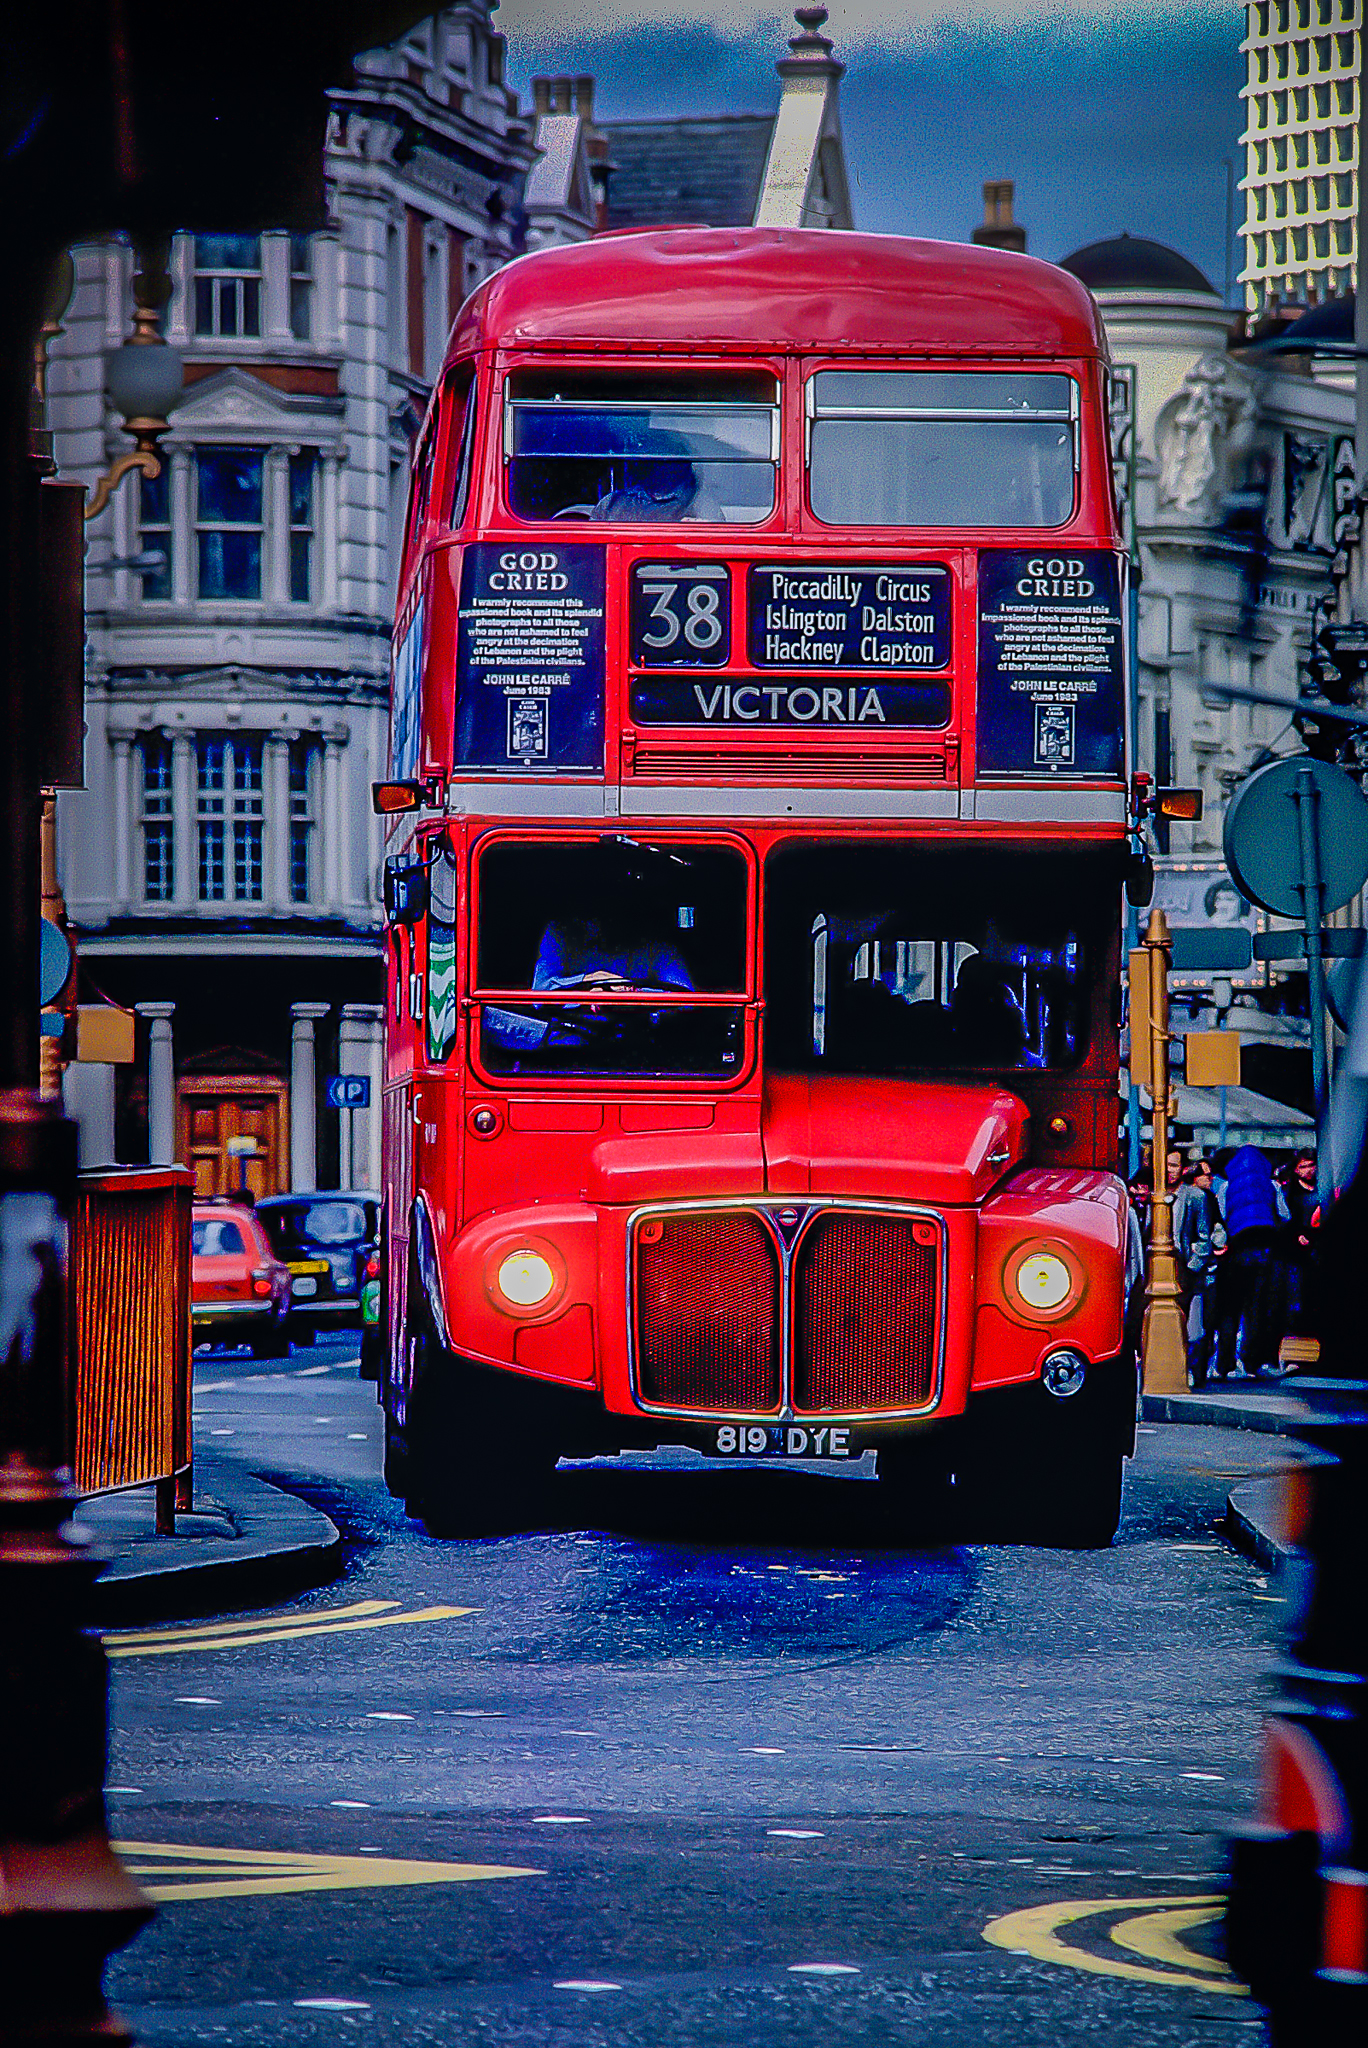 Double Decker Bus, Victoria, London